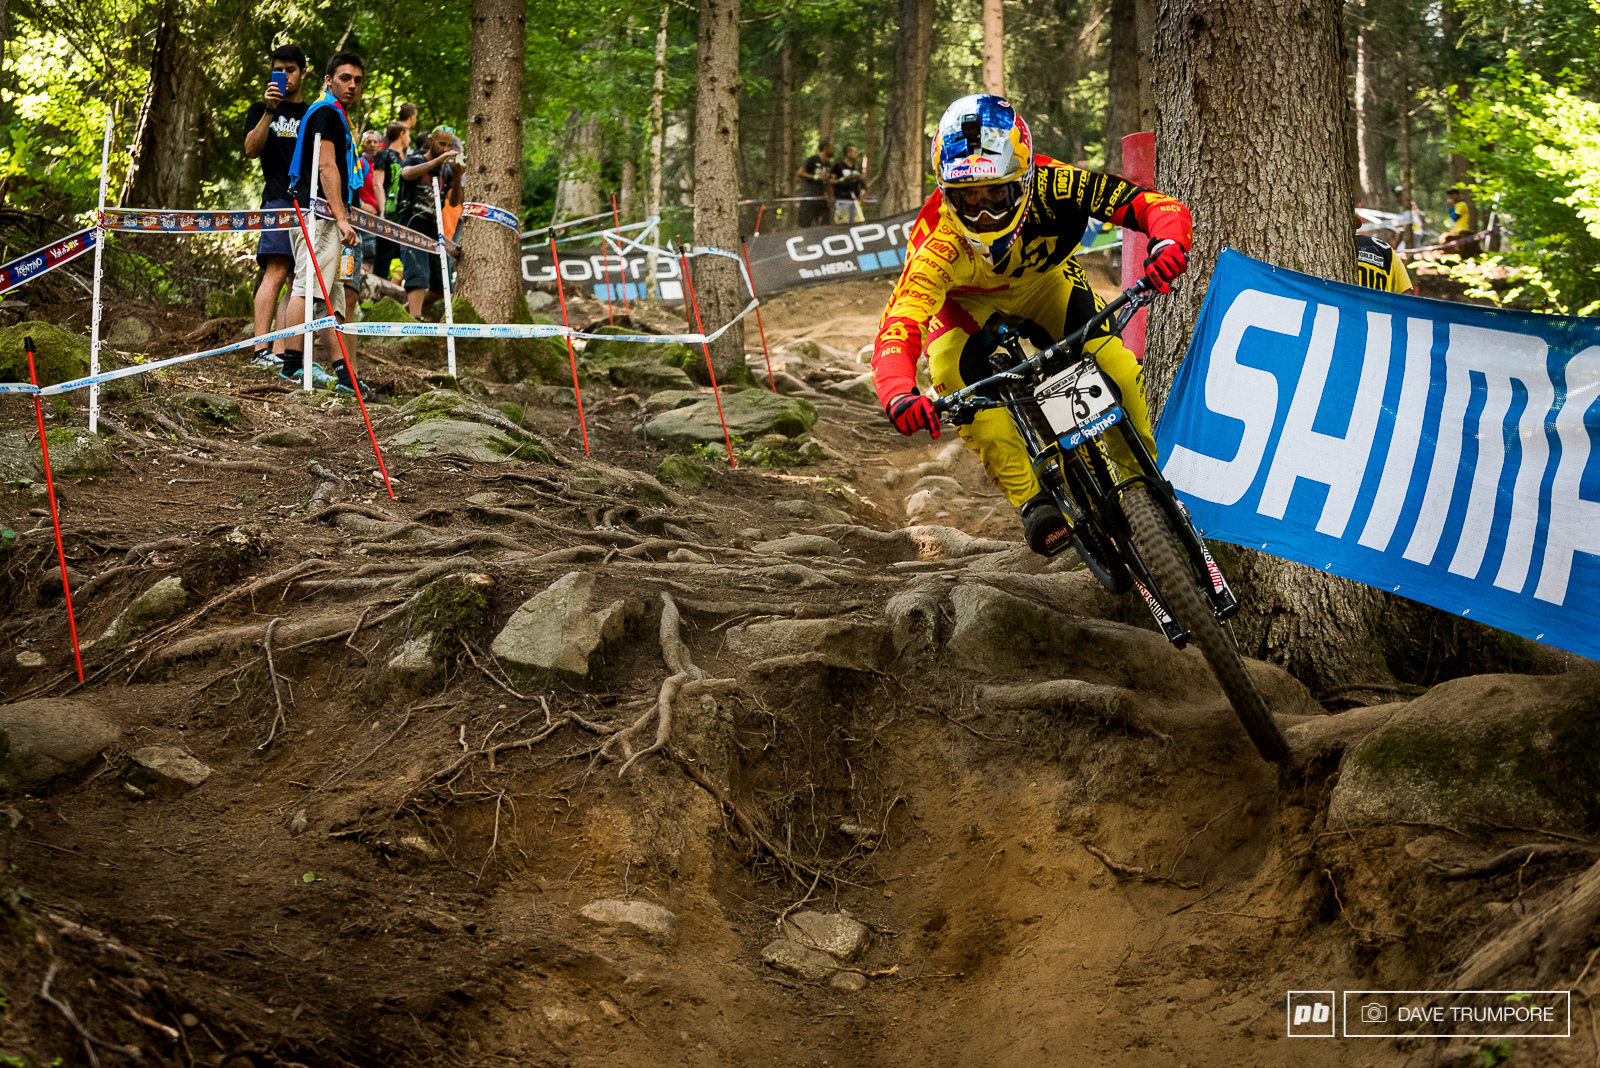 How many times can Loic Bruni come so close to winning a World Cup We recon that once he wins he is going to keep winning for a long time.